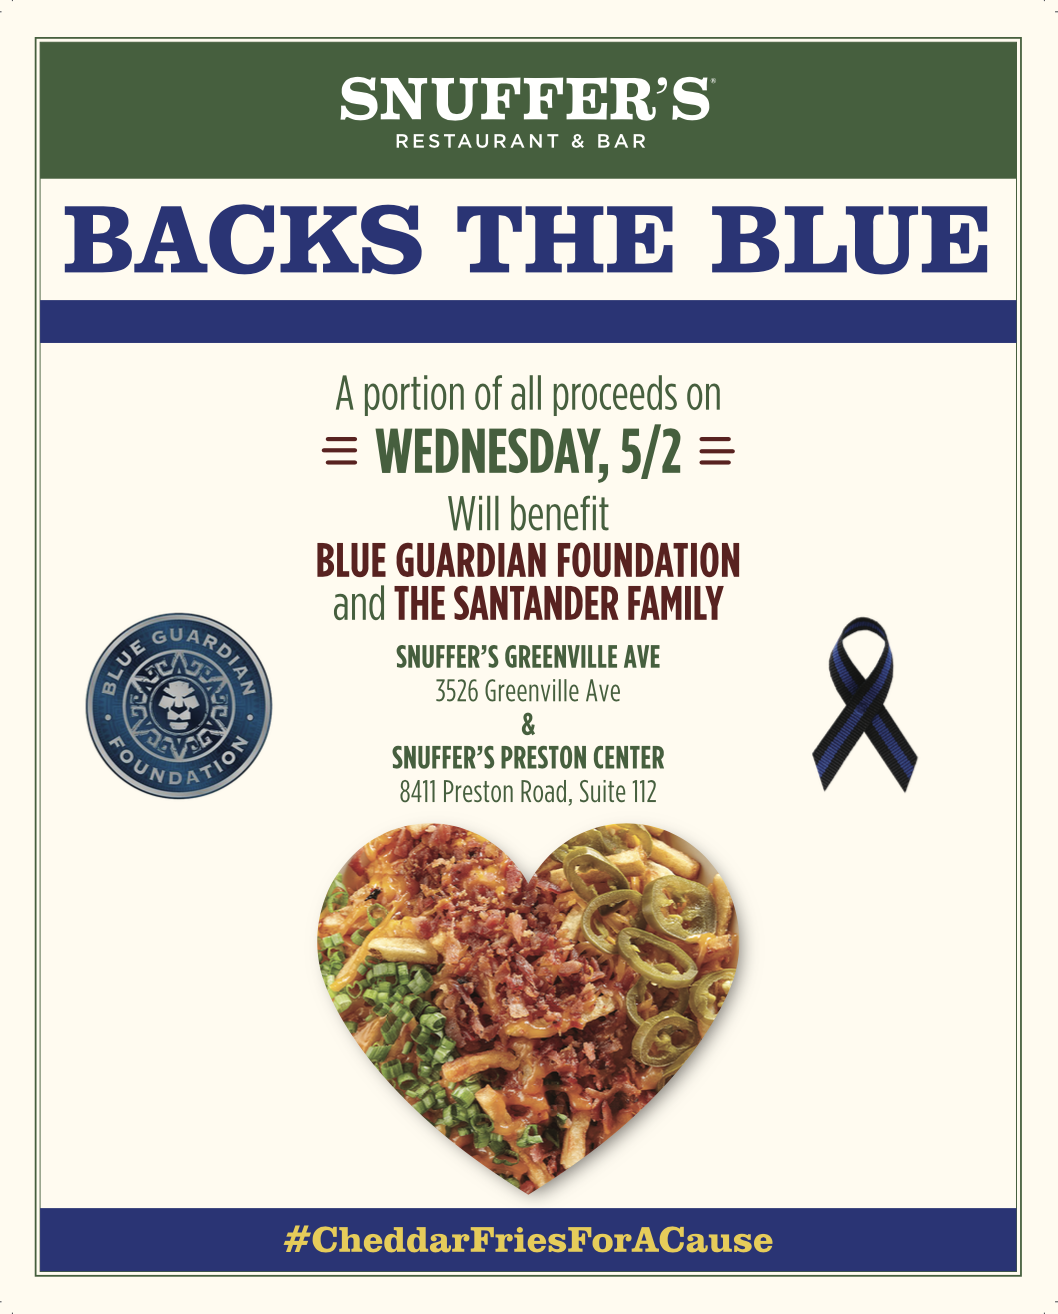 Snuffer's Restaurant & Bar Fundraiser For Fallen Officers! #cheddarfriesforacause